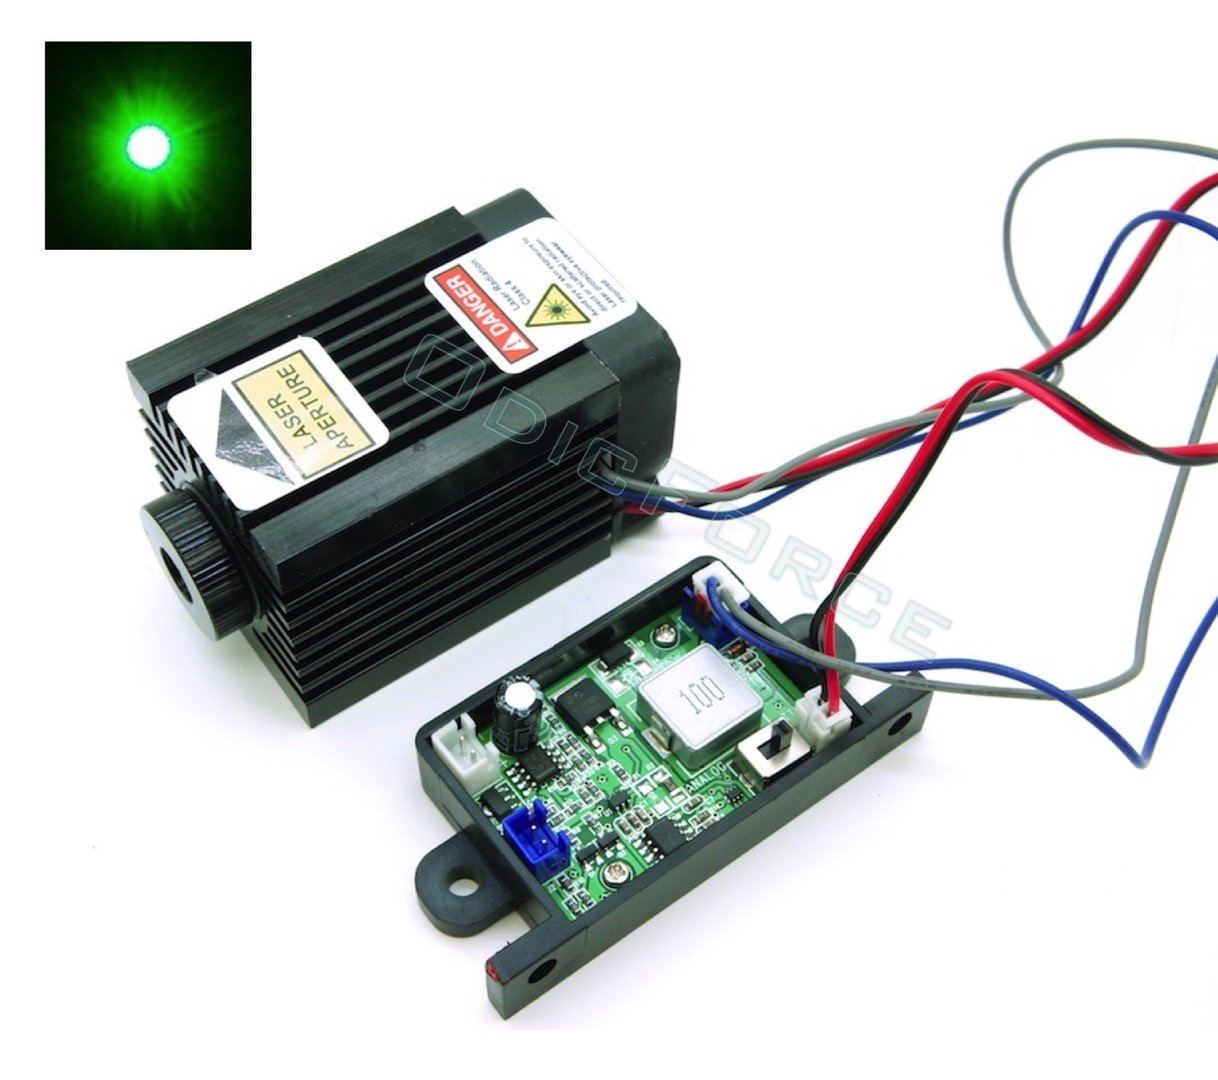 1000mW 520nm Direct Diode Green Laser Module with Adjustable Focus and TTL/Analogue Modulation (12V)